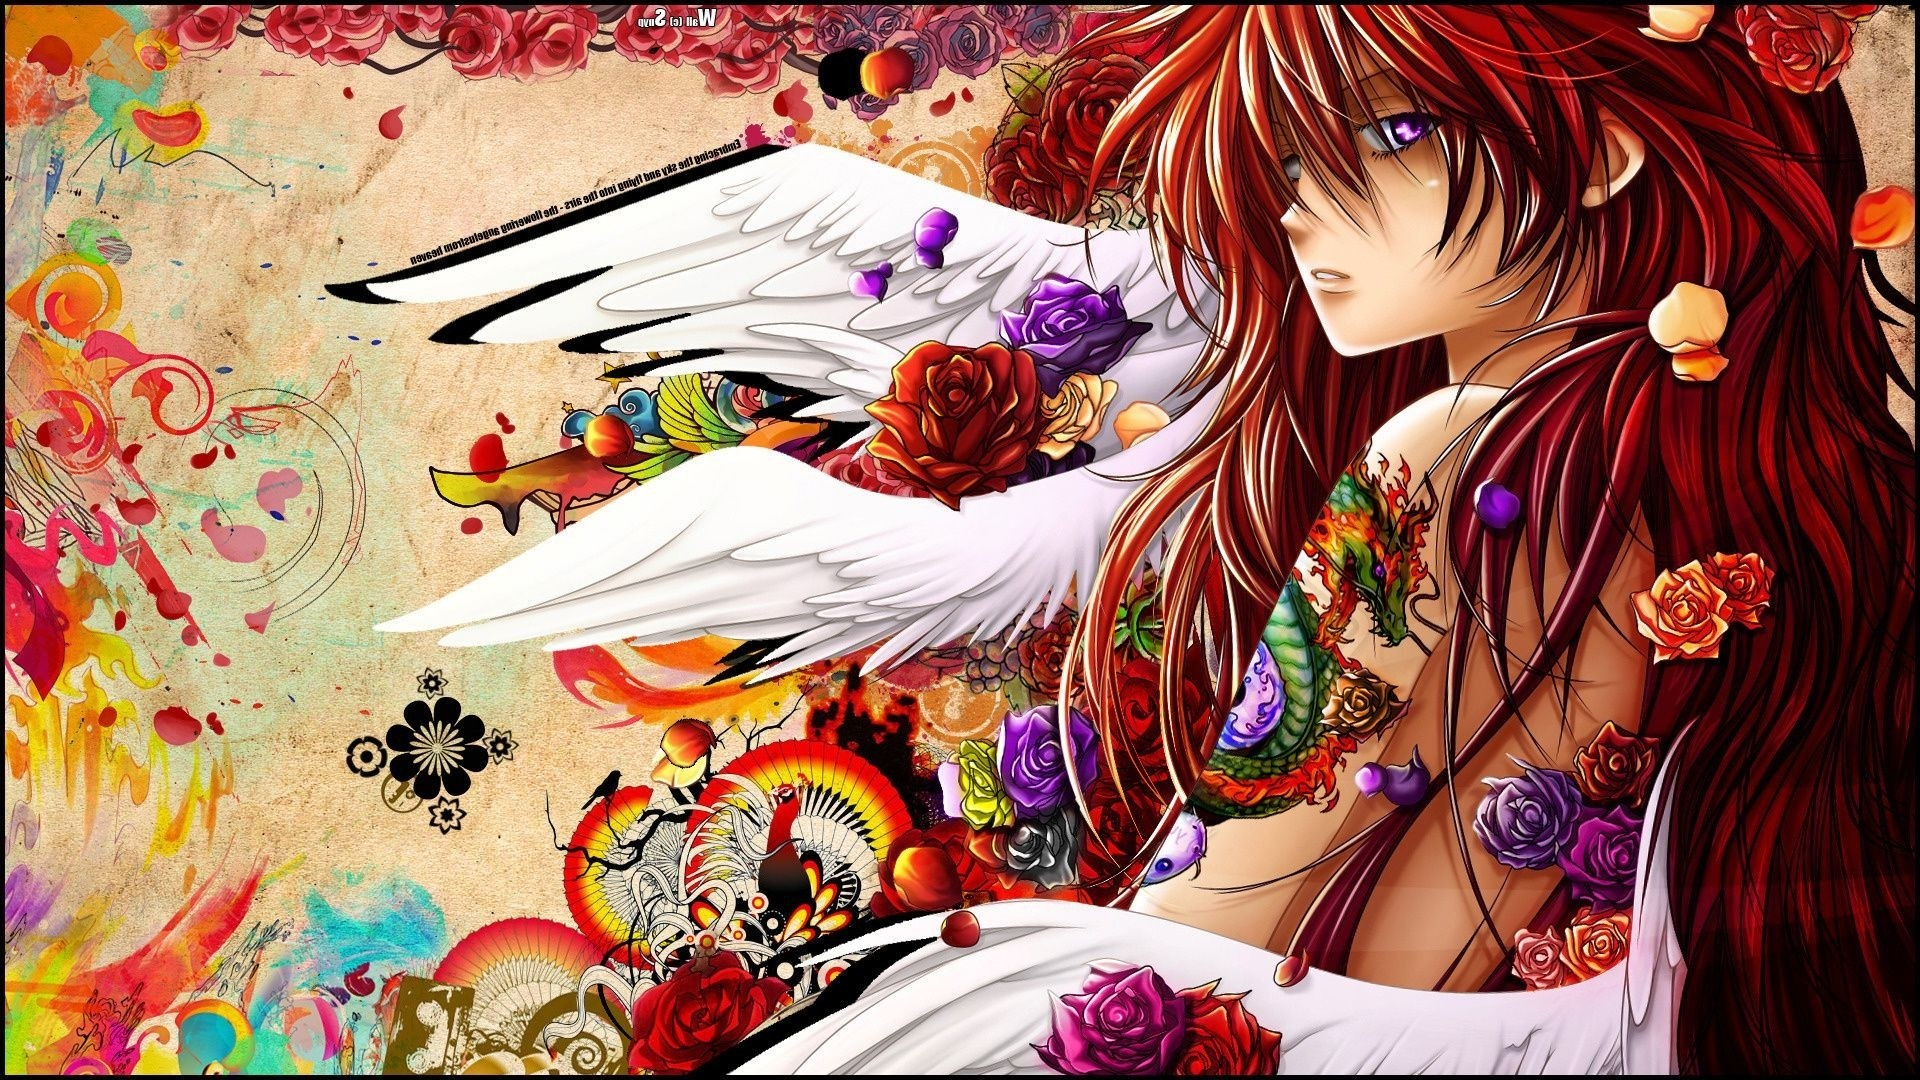 Manga Wallpaper Download